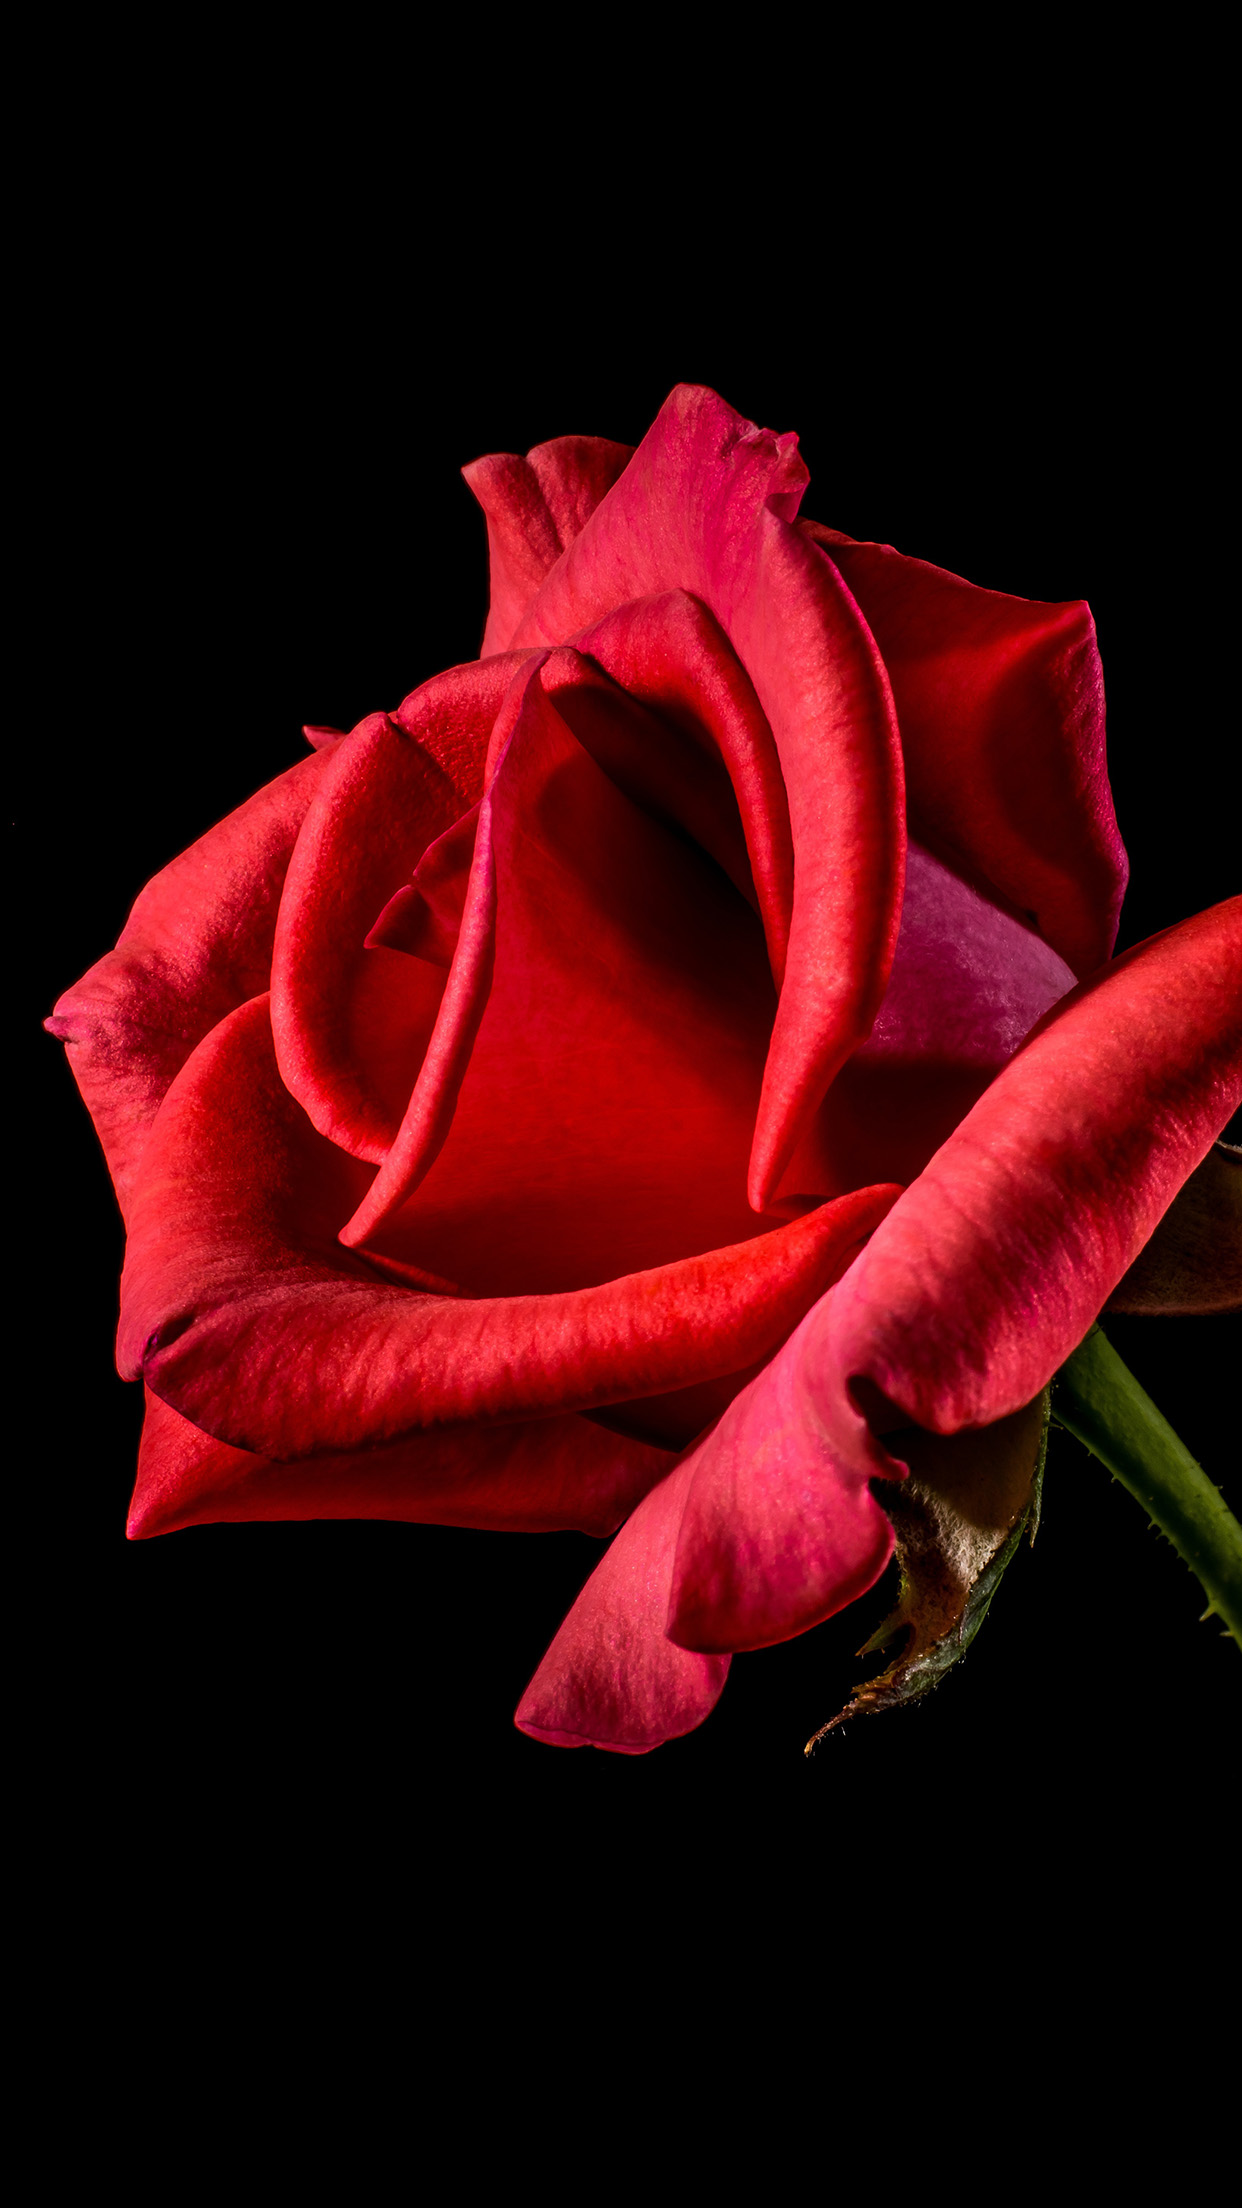 Flower Rose Red Dark Beautiful Best Nature Android Wallpaper